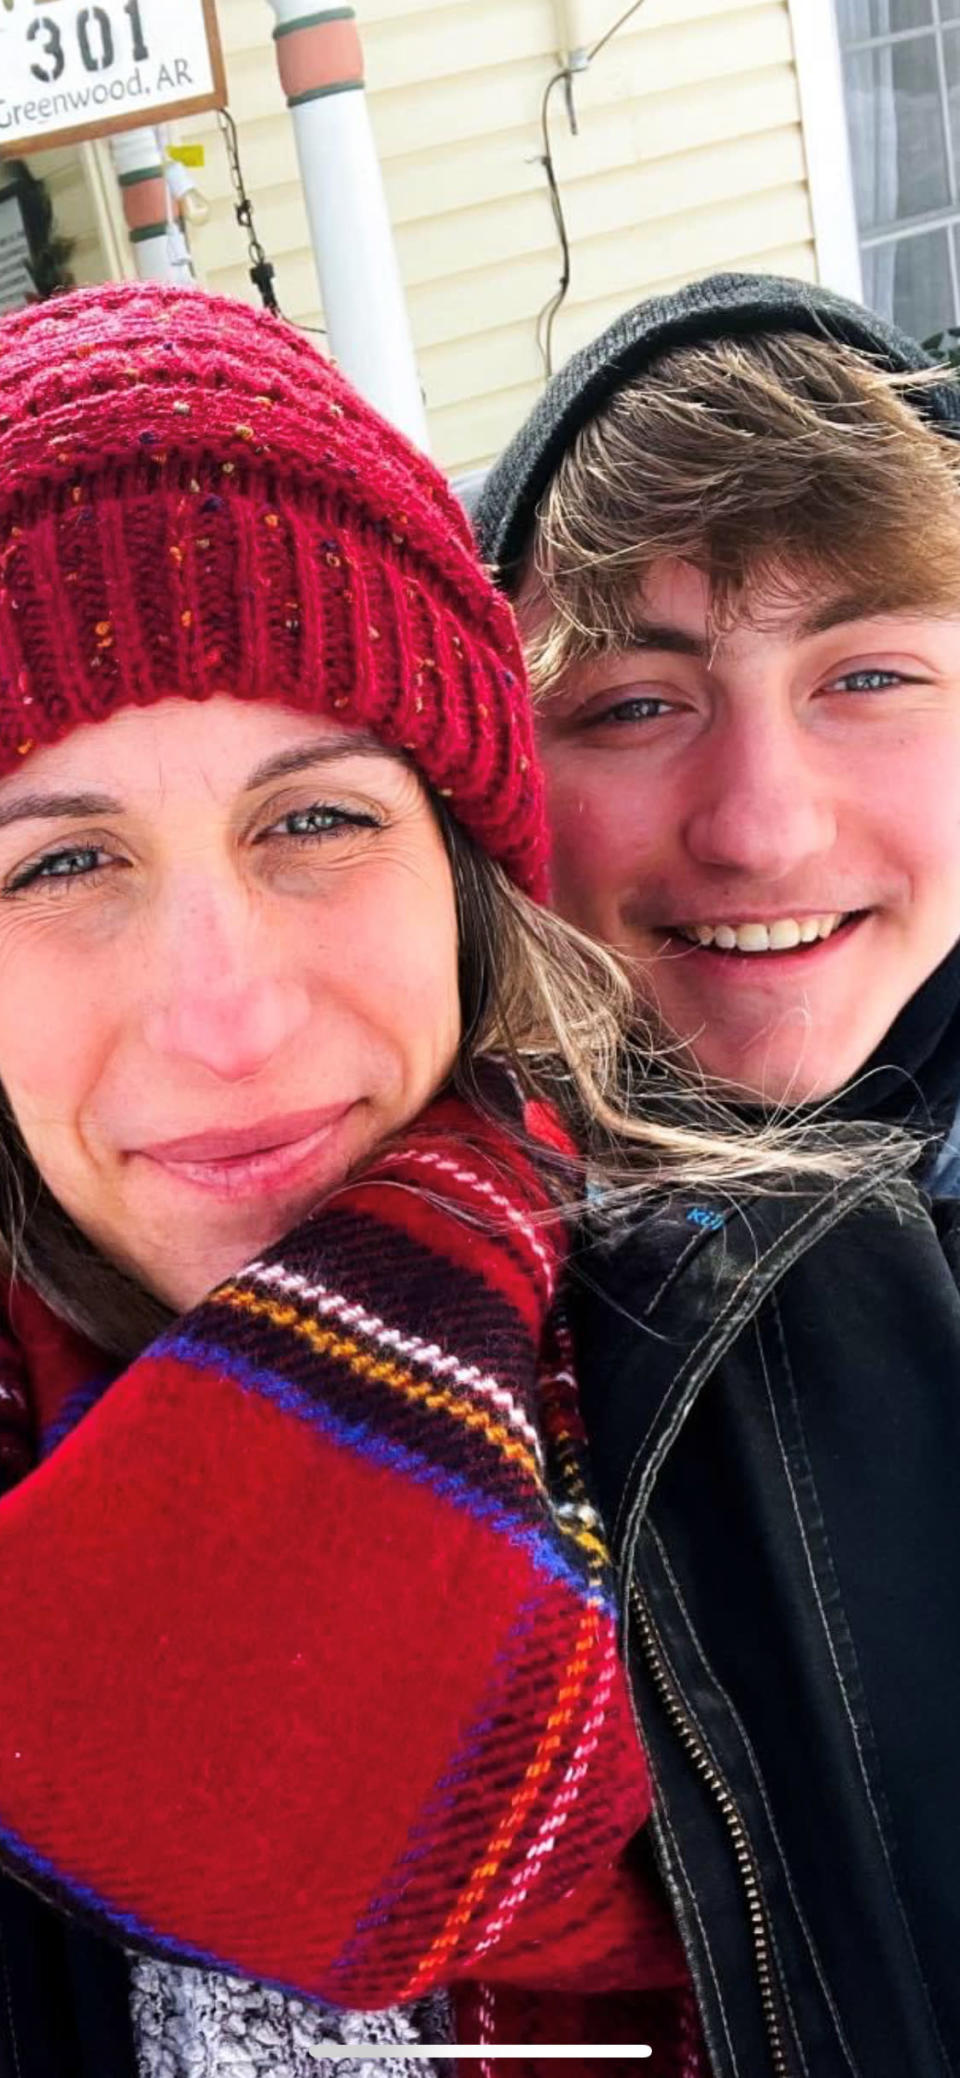 Dylan Brandt, 15, and his mom pose for a photos in Greenwood, Arkansas on Feb. 18, 2021. Dylan is one of hundreds of transgender youth in Arkansas who could have their hormone therapy cut off under a new law banning gender confirming treatments for minors. Opponents have vowed to challenge the law in court before it takes effect later this year. (Joanna Brandt via AP)